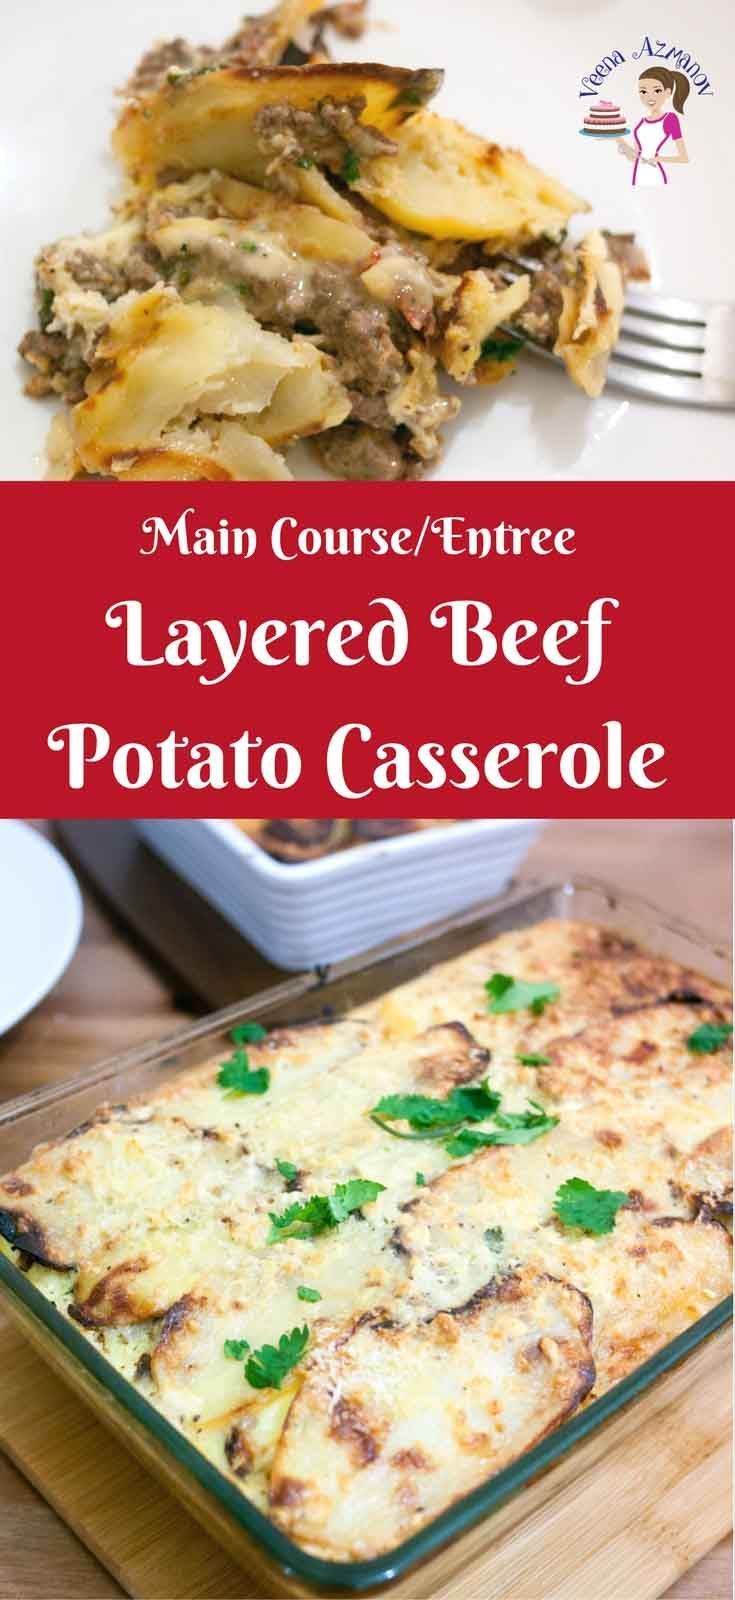 A delicious and pretty meat casserole is perfect for entertaining. The Layered beef potato casserole is a simple and easy make a head dish that can be baked just before your guest arrive or baked just before dinner on busy weeknights. #beef #potato #casserole #middleeastern #cuisine #makeahead #baked #dinner #lunch #entertaining #recipes via @Veenaazmanov